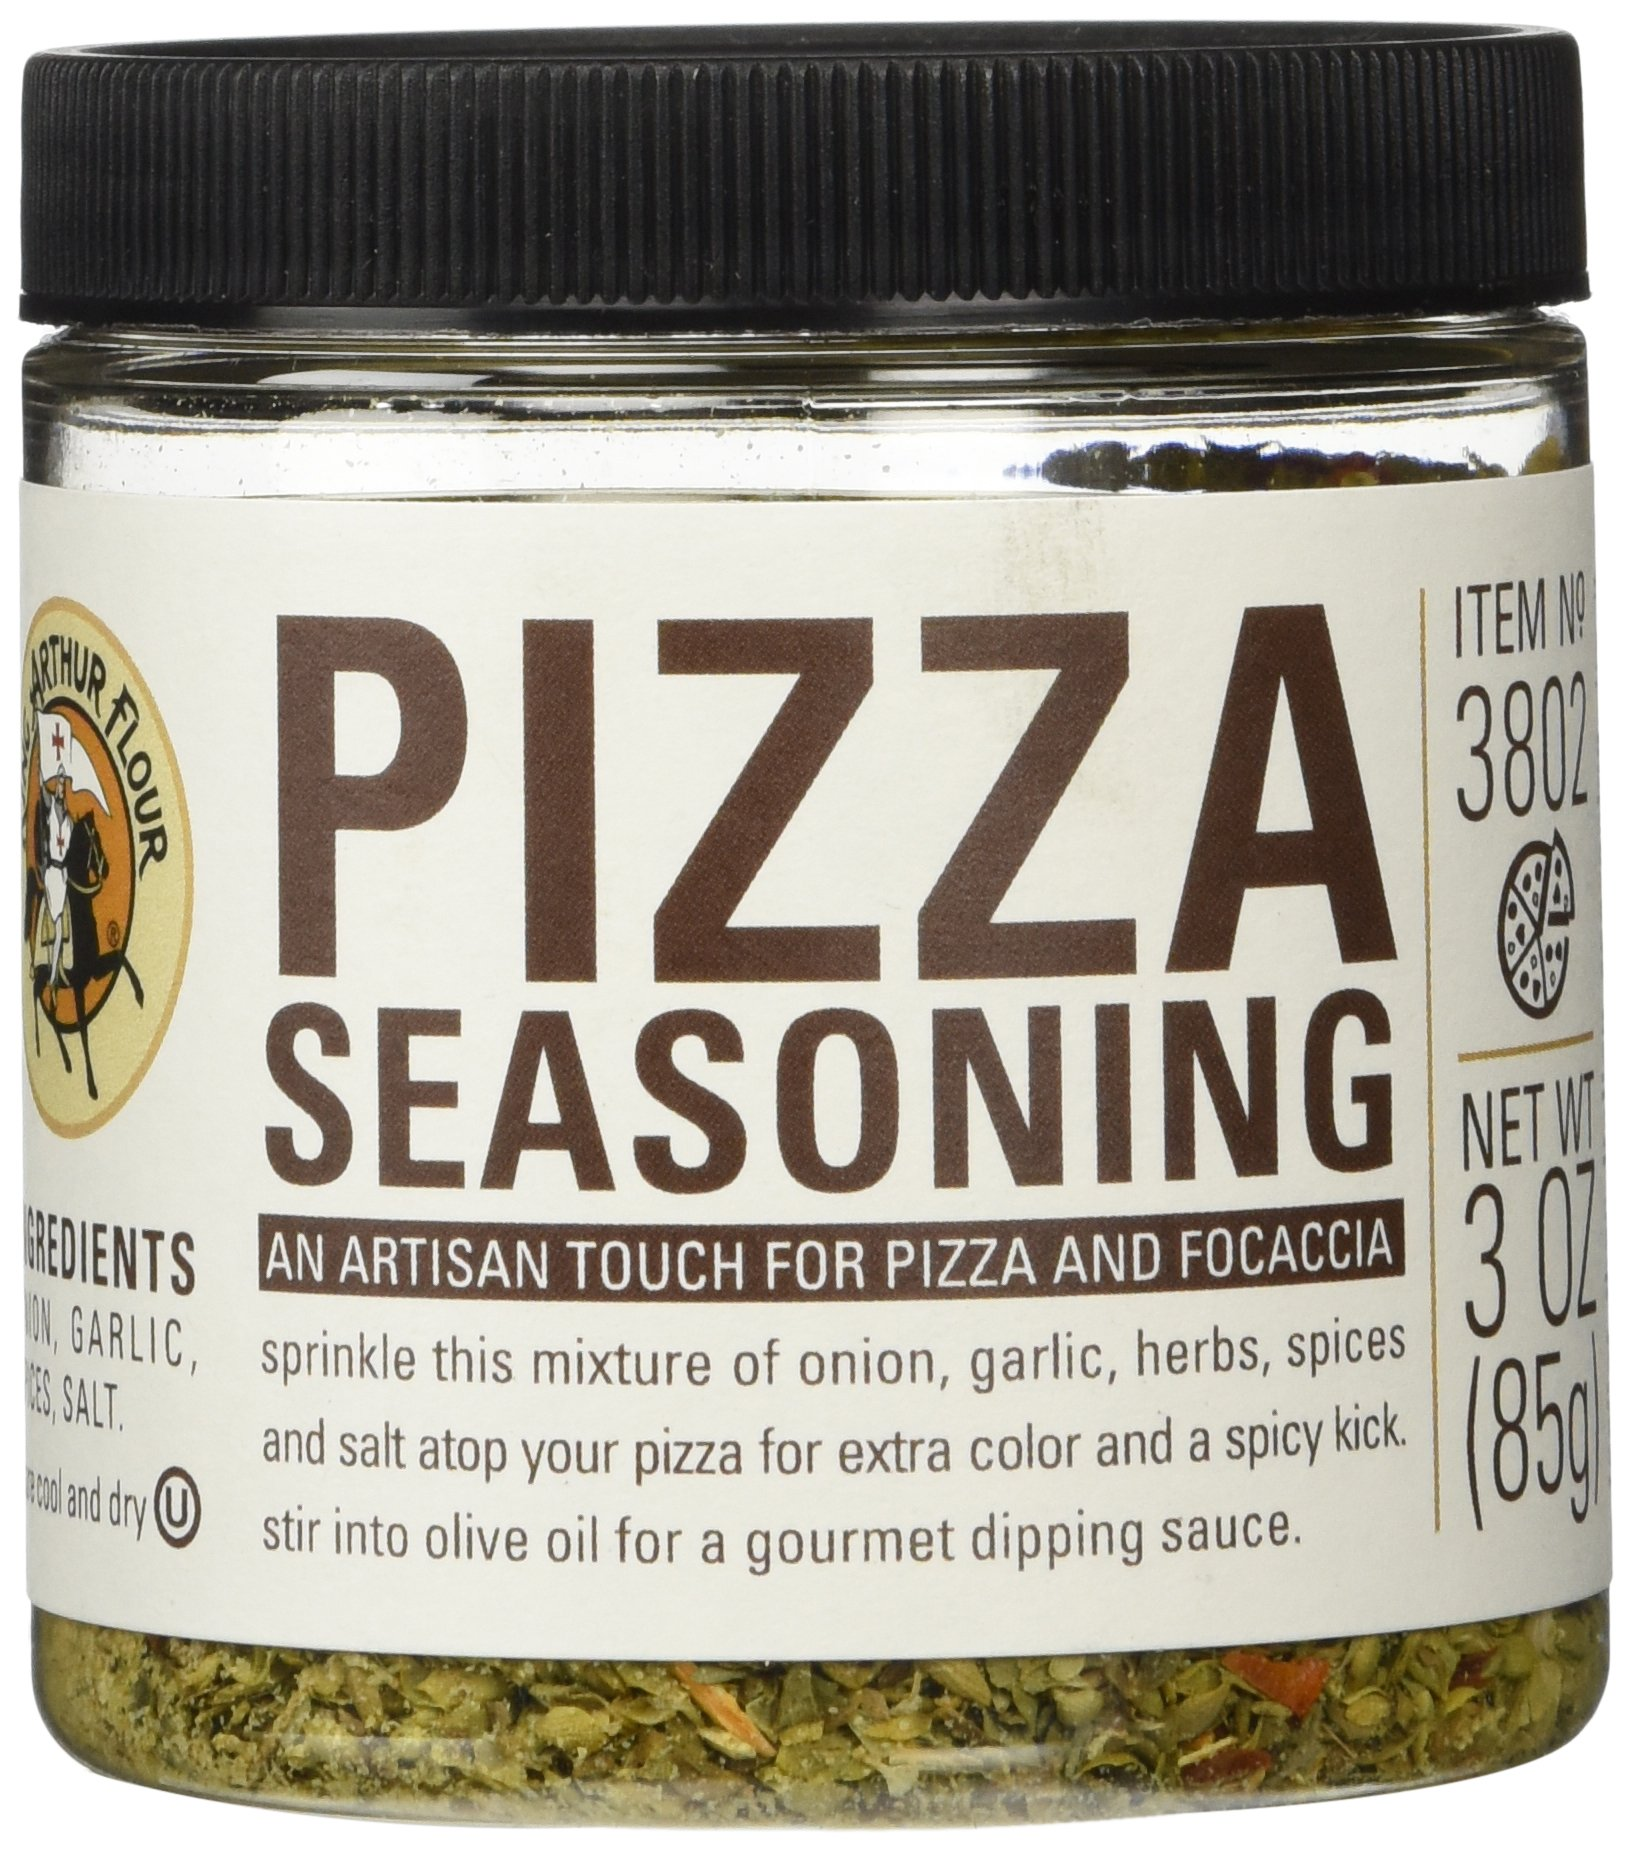 Amazon.com : San Marzano Pizza Sauce 14 oz : Hot Sauces